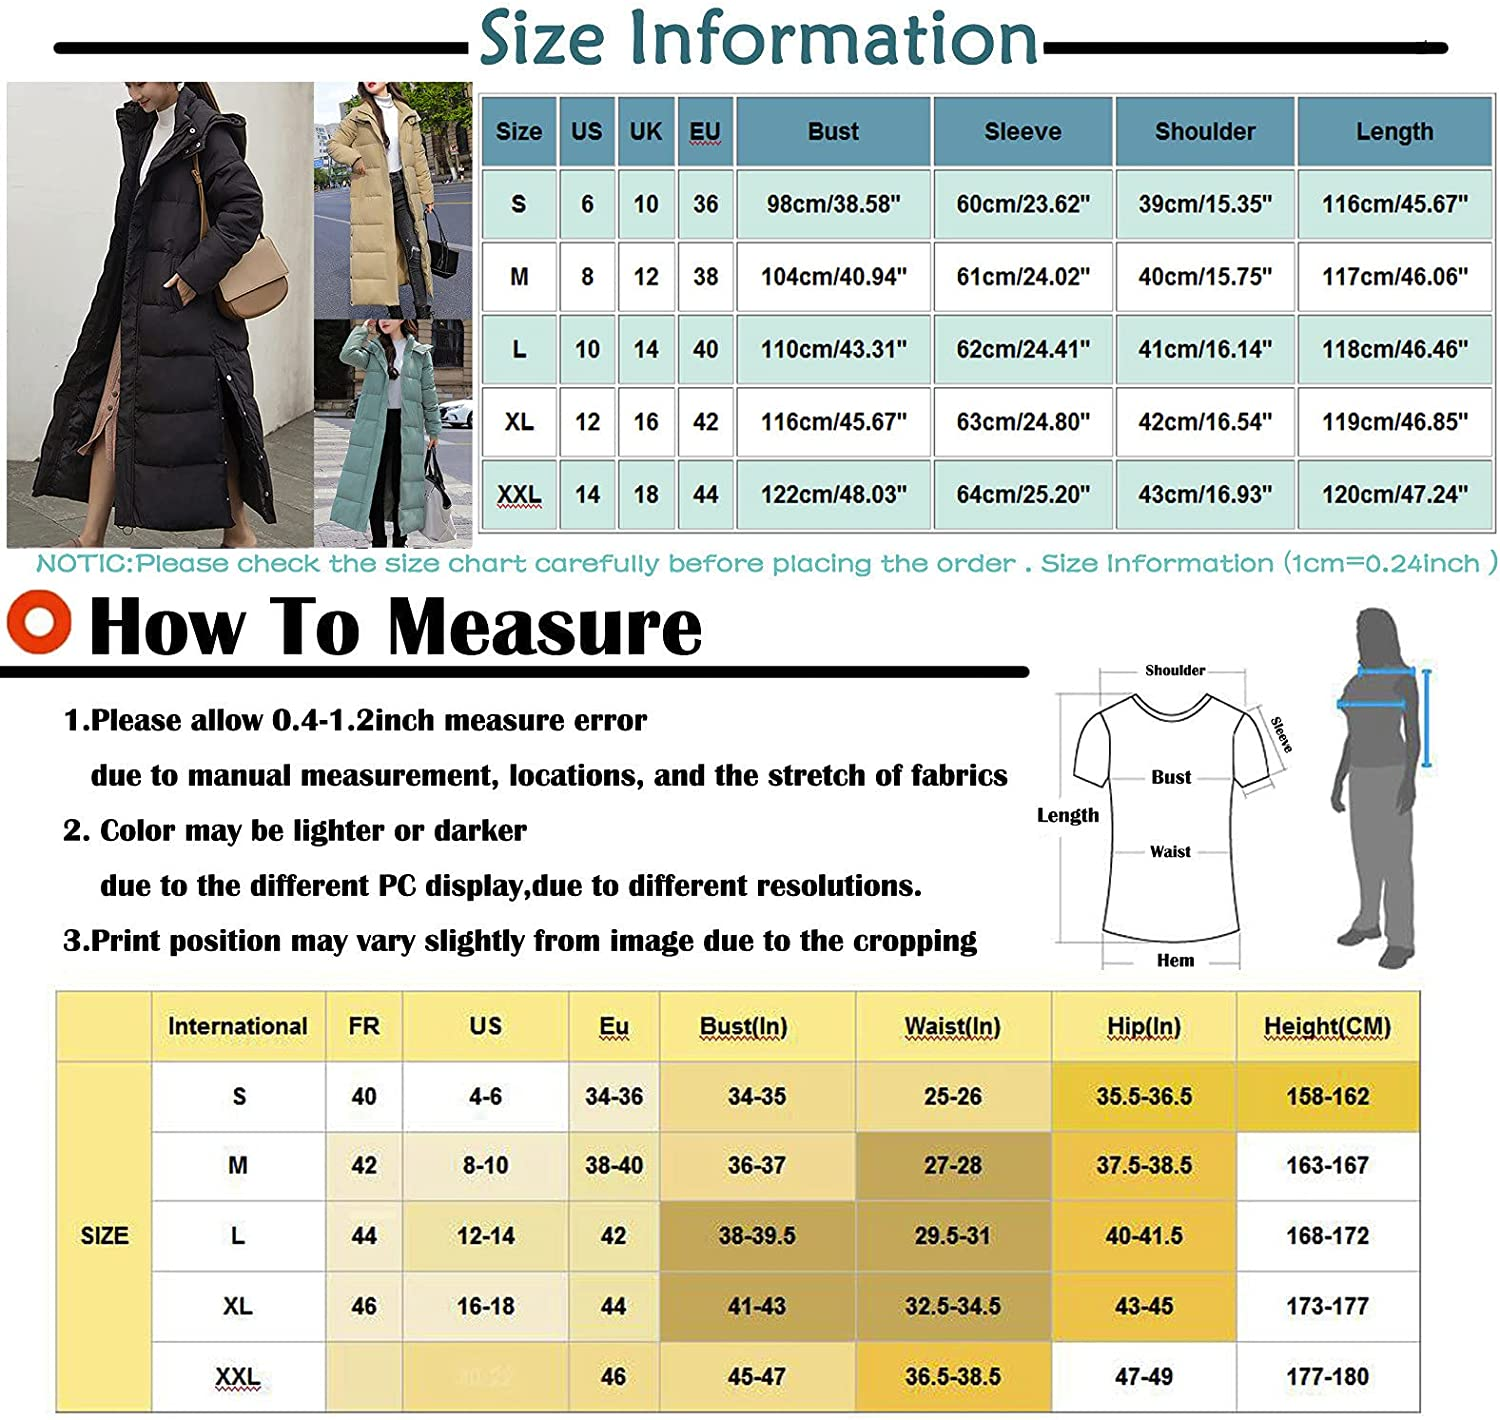 Hooded Down Peacoat Women's Winter Long Down Cotton Parka Coat Ladies Warm Quilted Outwear